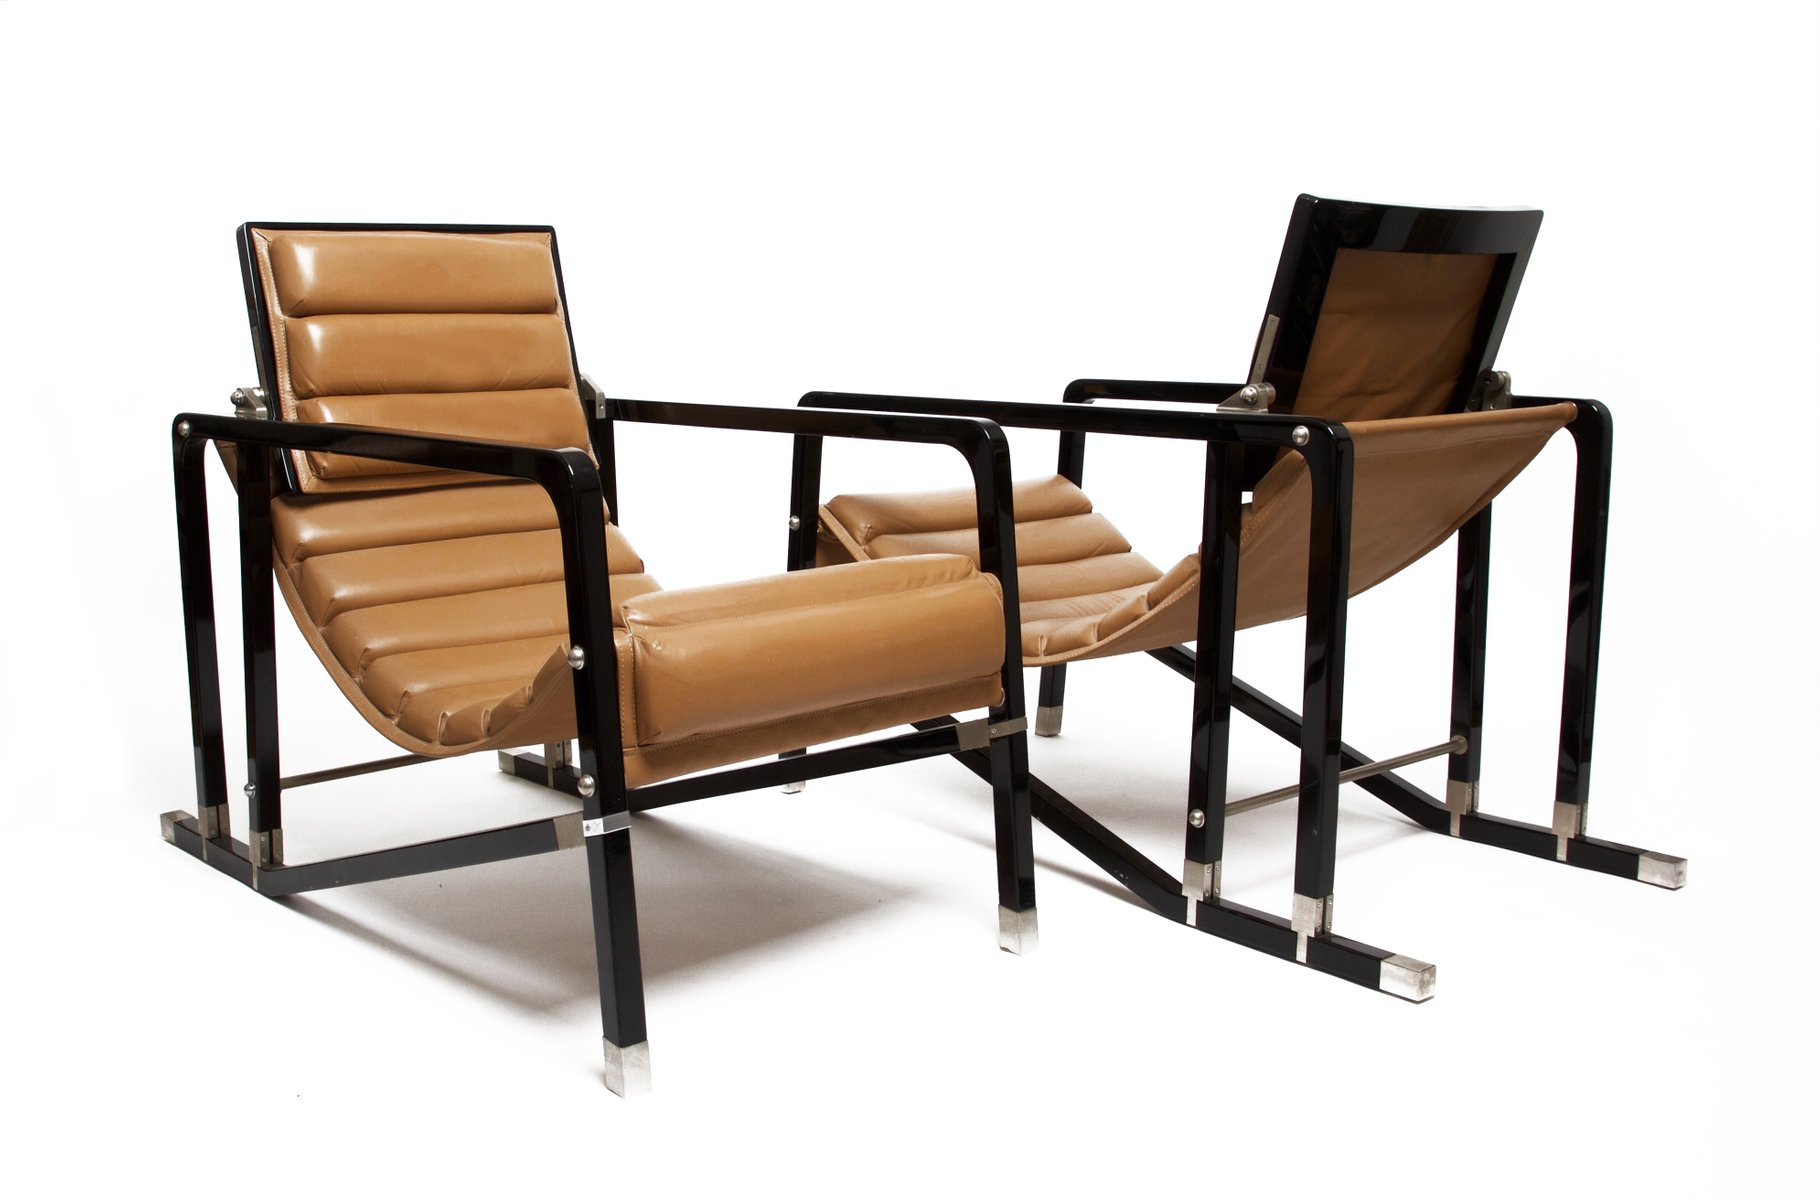 Eileen gray transat chairs by andr e putman for ecart for Lampadaire la chaise longue